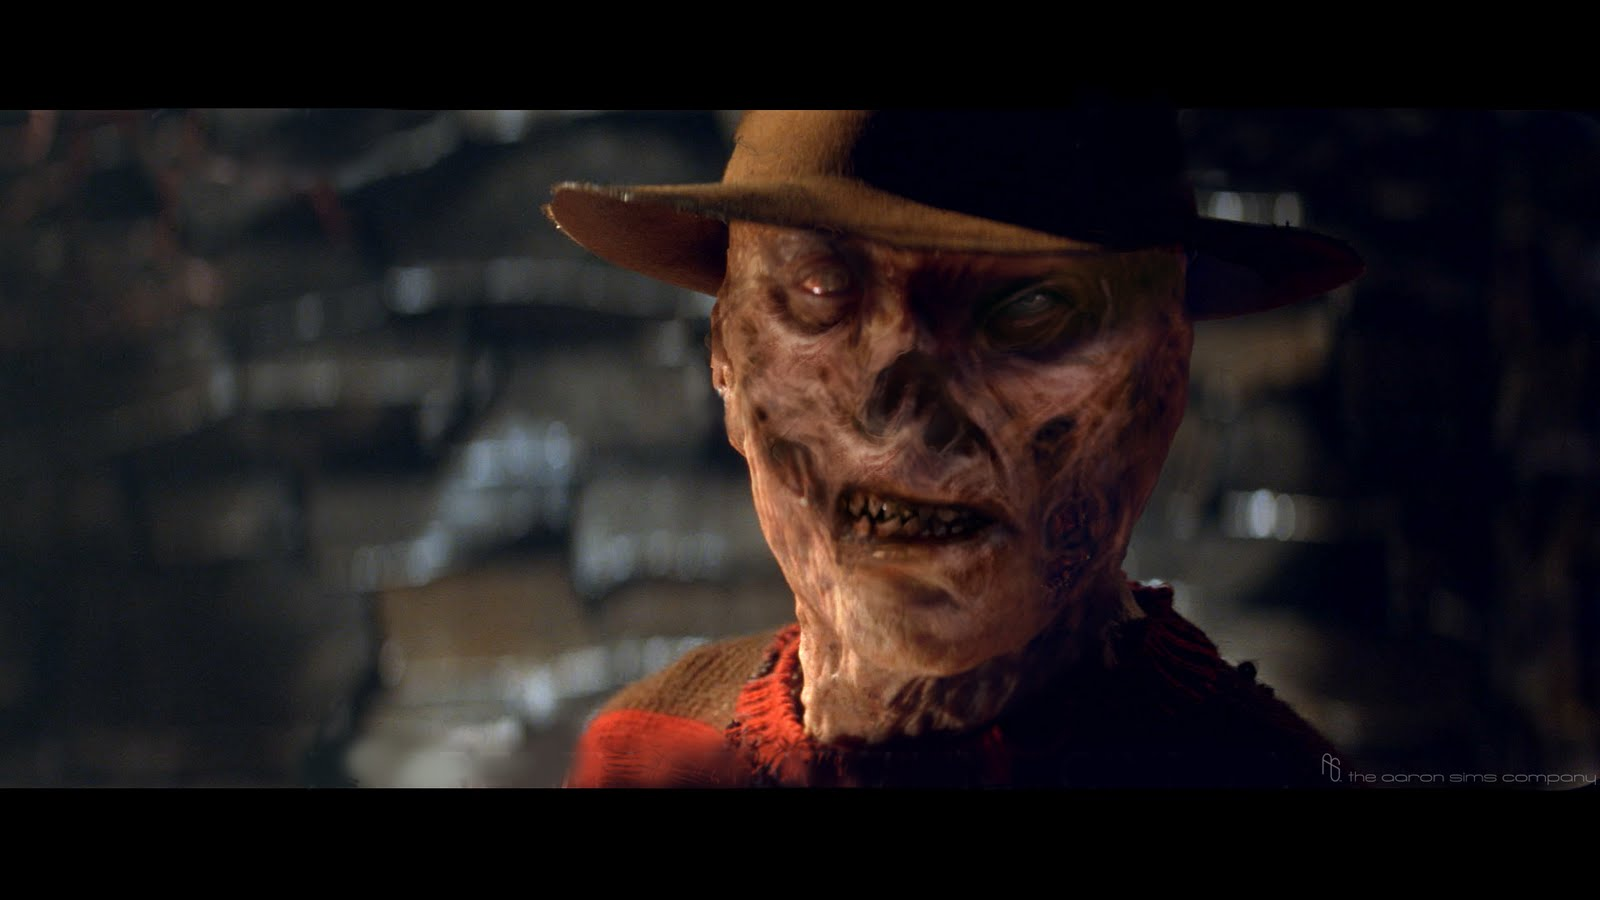 Welcome to Prime Time- Ranking the Nightmare on Elm Street Series